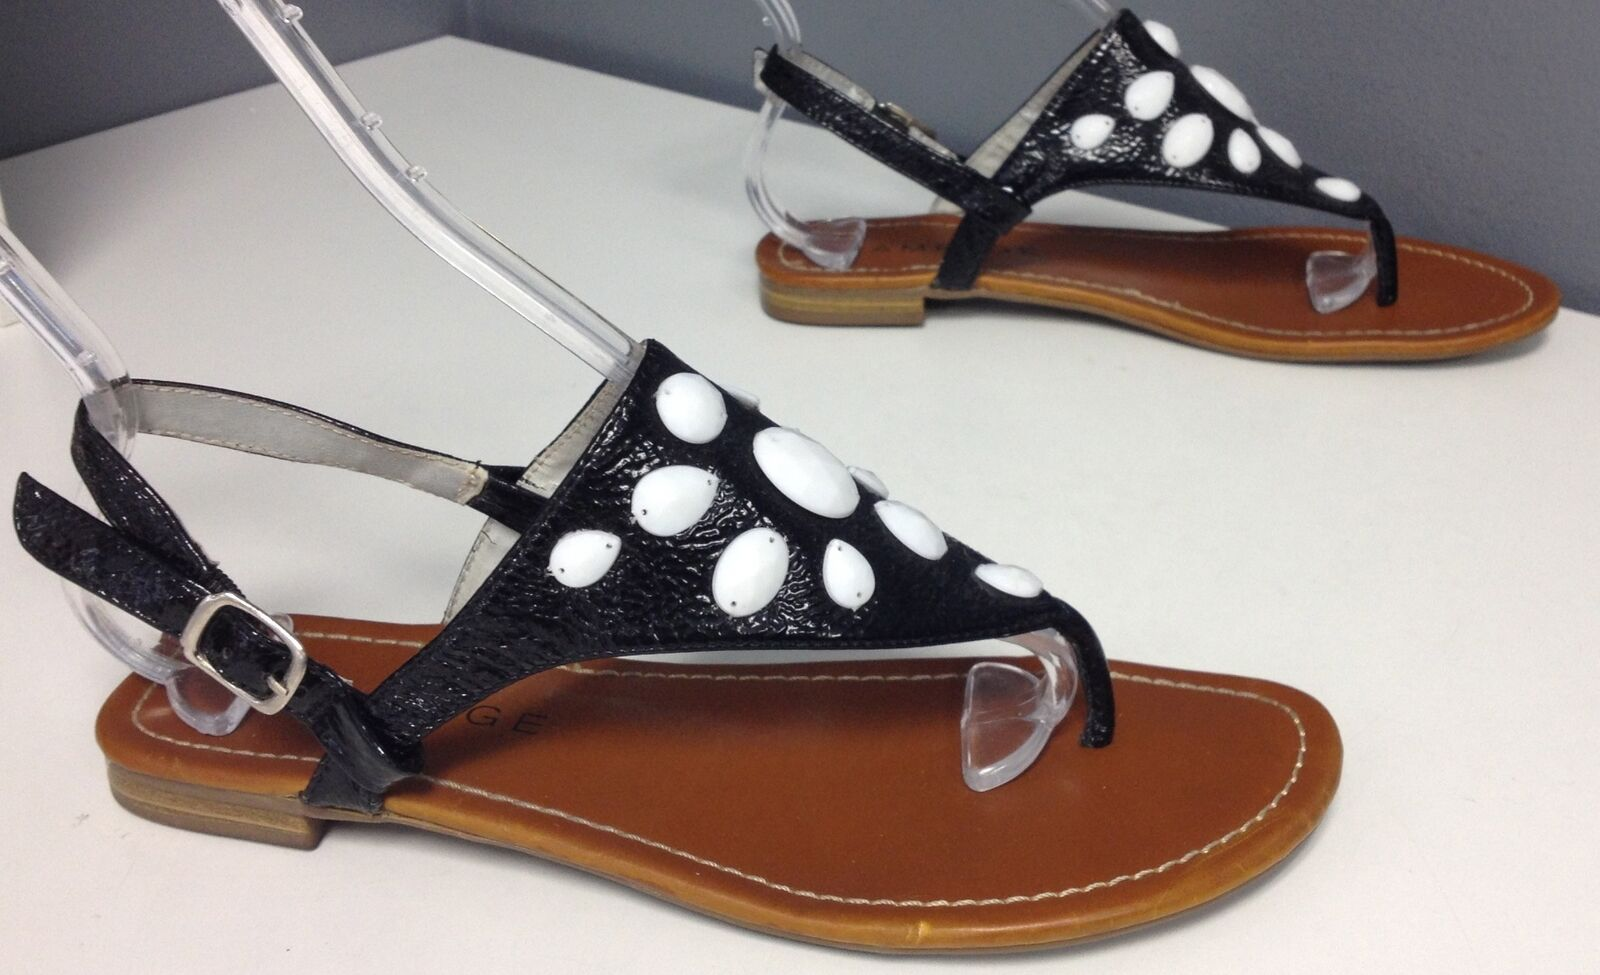 RAMPAGE Black White Bead Accented Top Ankle Buckle Flip Flop Sandal Sz 8.5 B4203